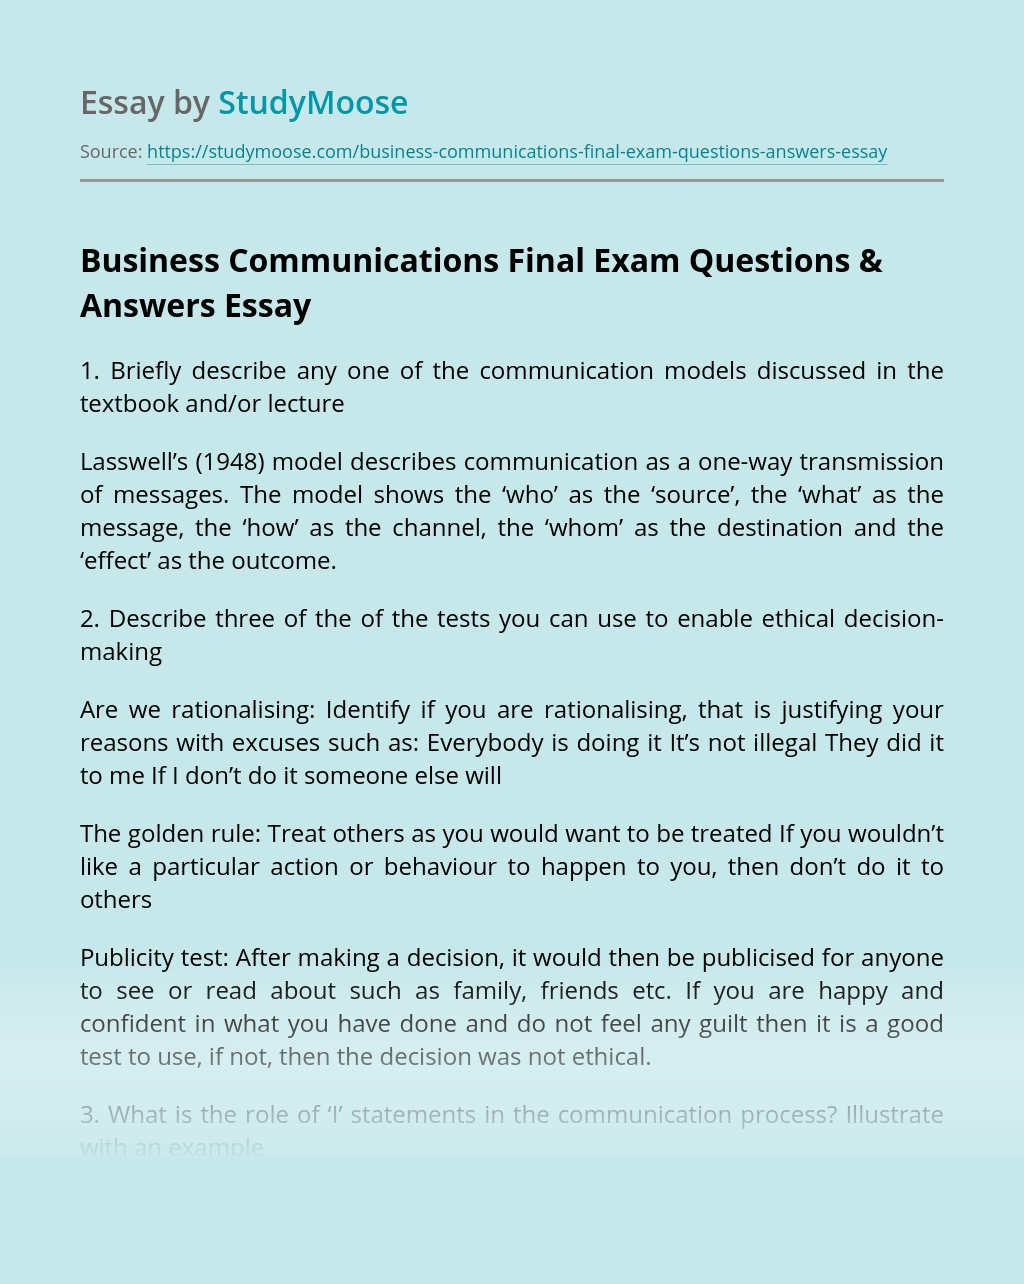 Business Communications Final Exam Questions & Answers